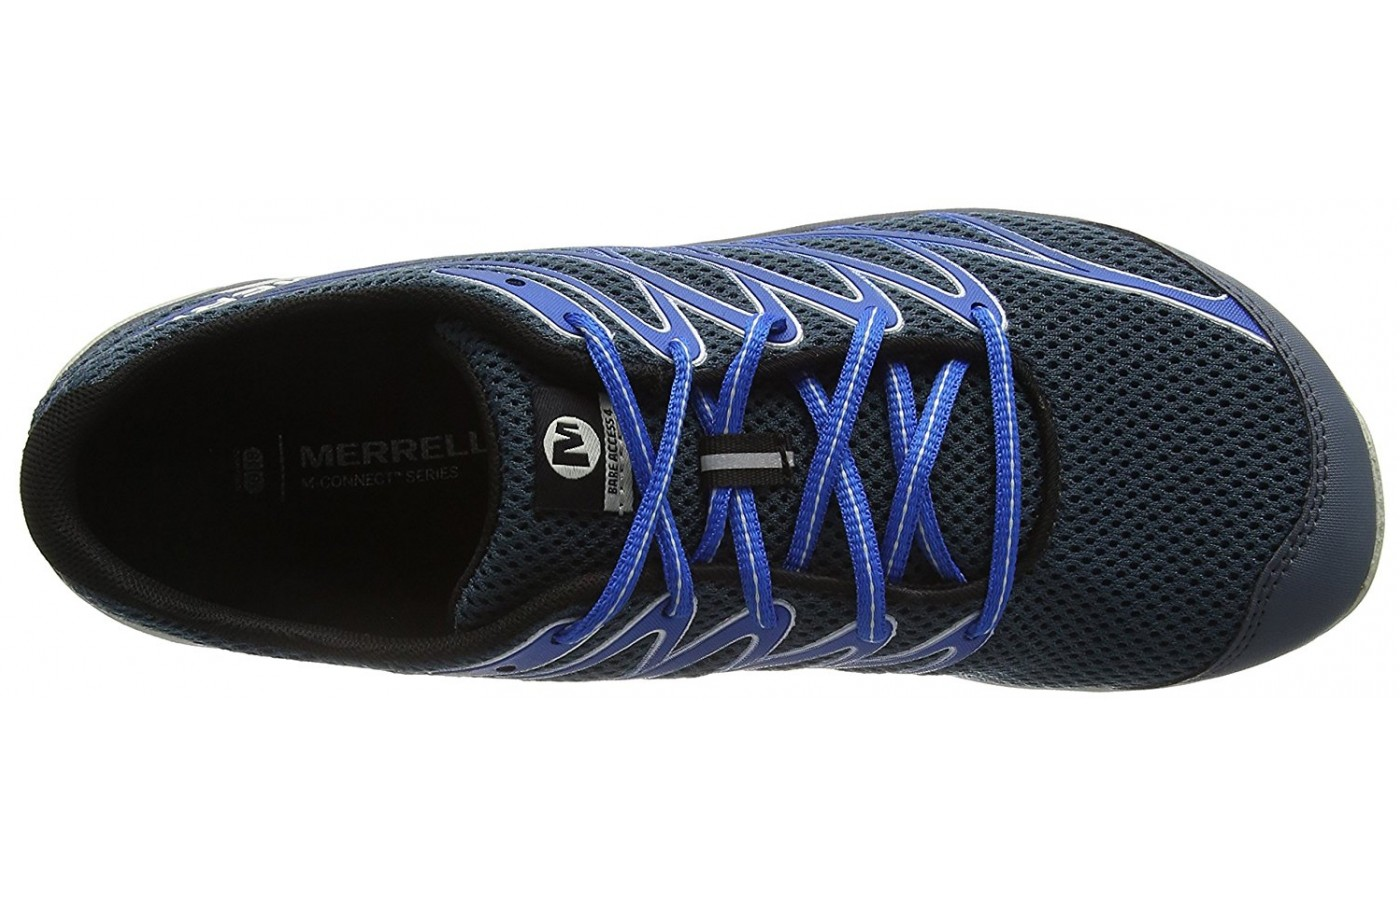 Merrell Bare Access 4 upper